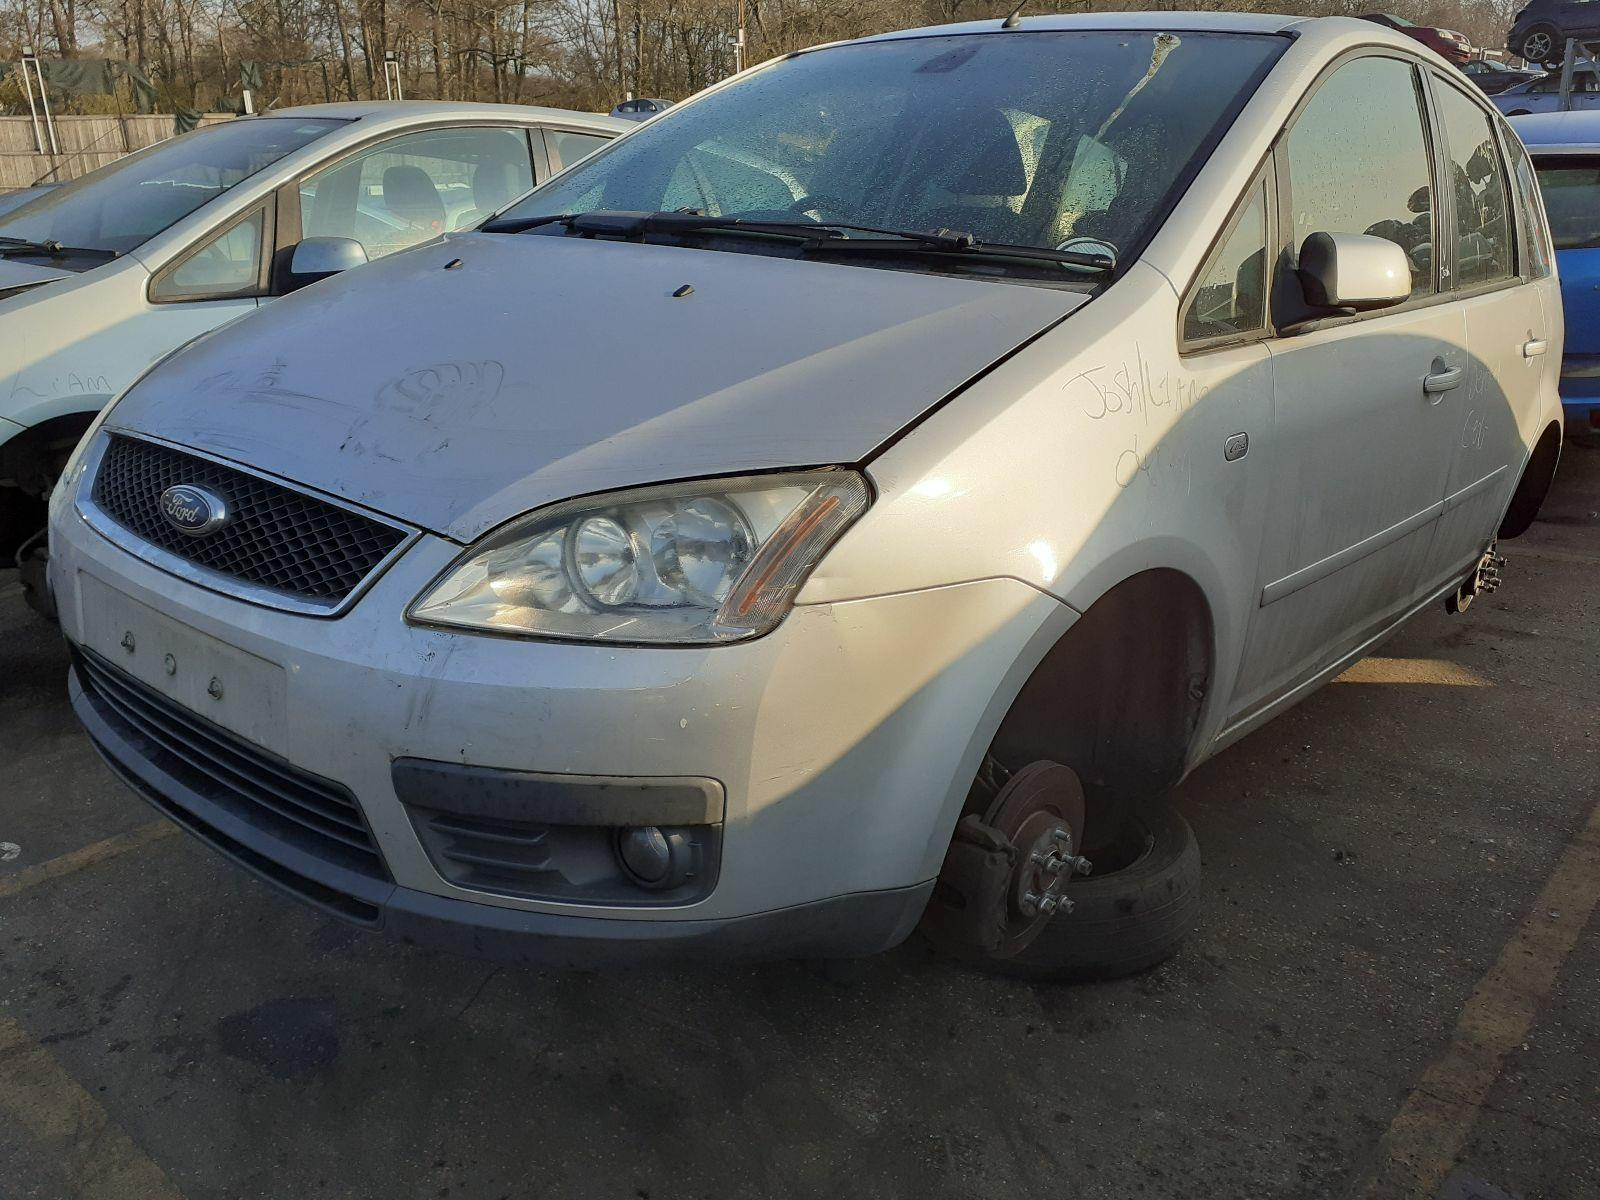 Ford Focus C-Max 2003 To 2007 Ghia 5 Door Hatchback